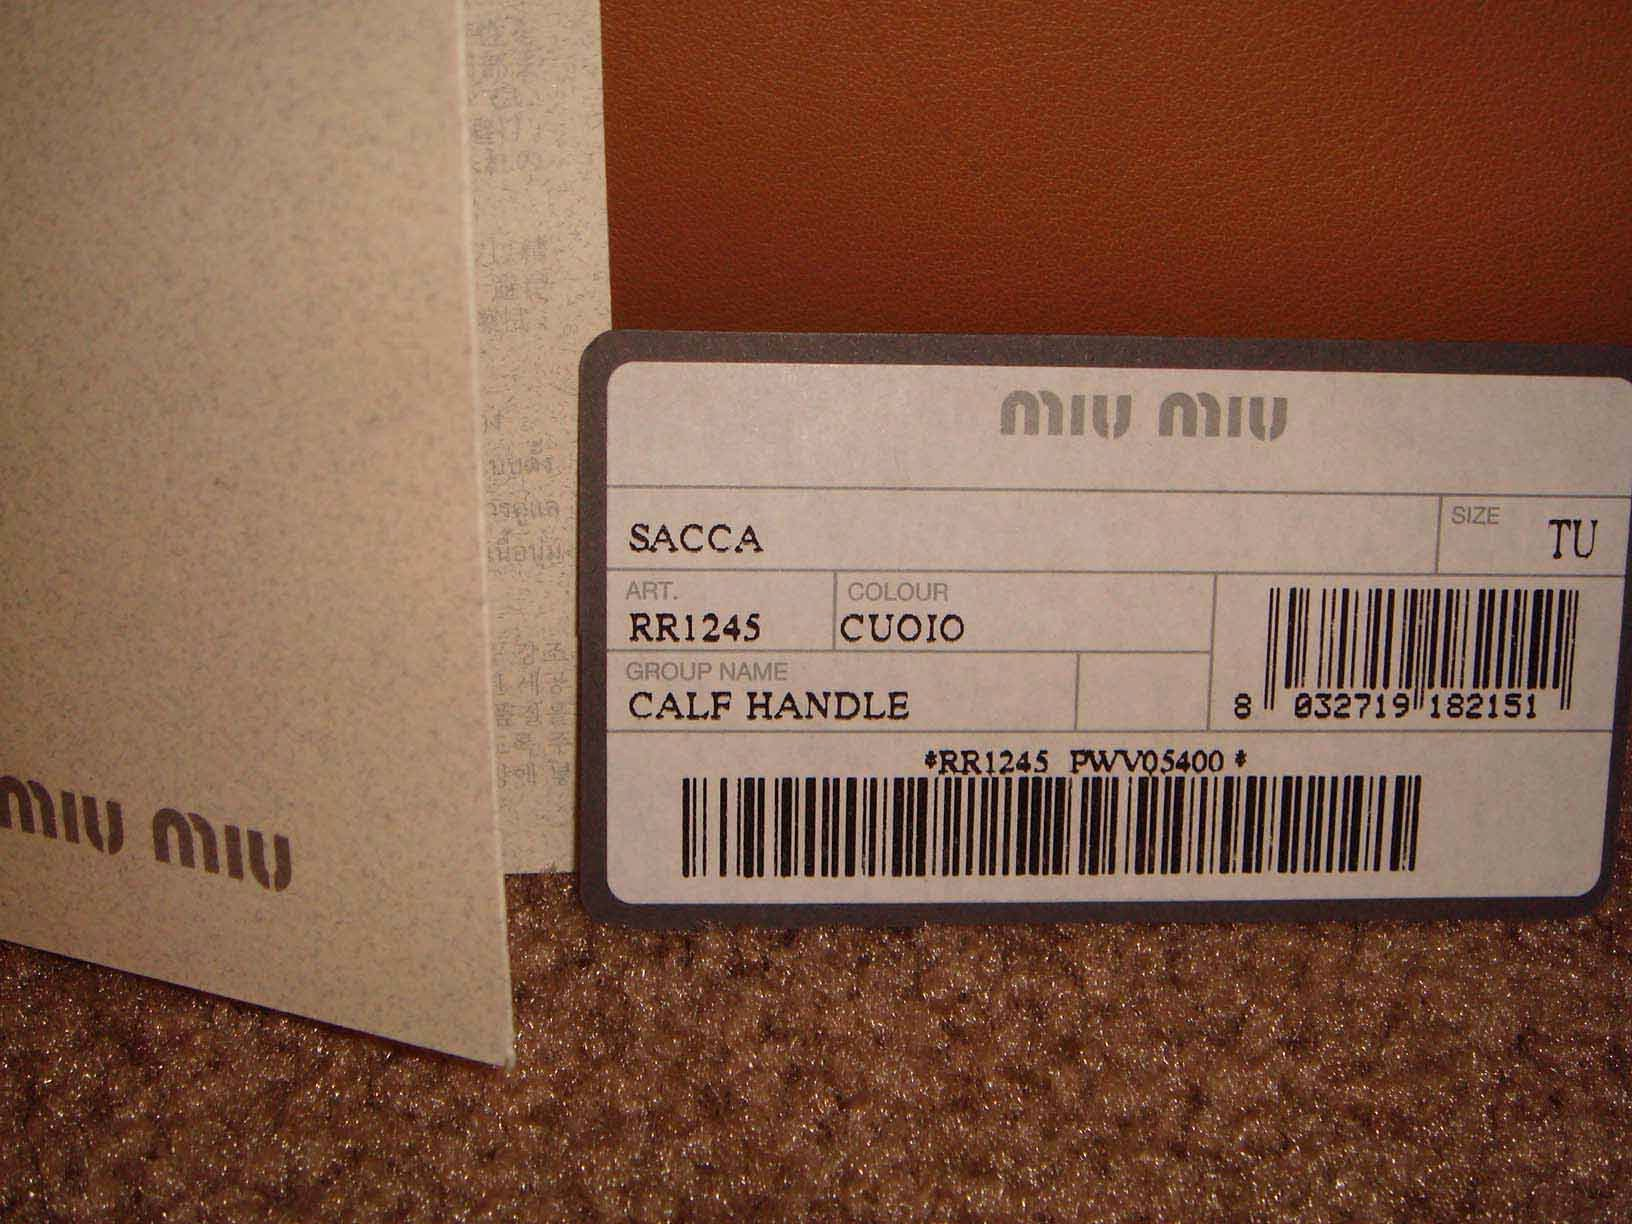 Fake Certificate Of Authenticity Unique Miu Miu Tips to Ensure Authenticity 2nd Take